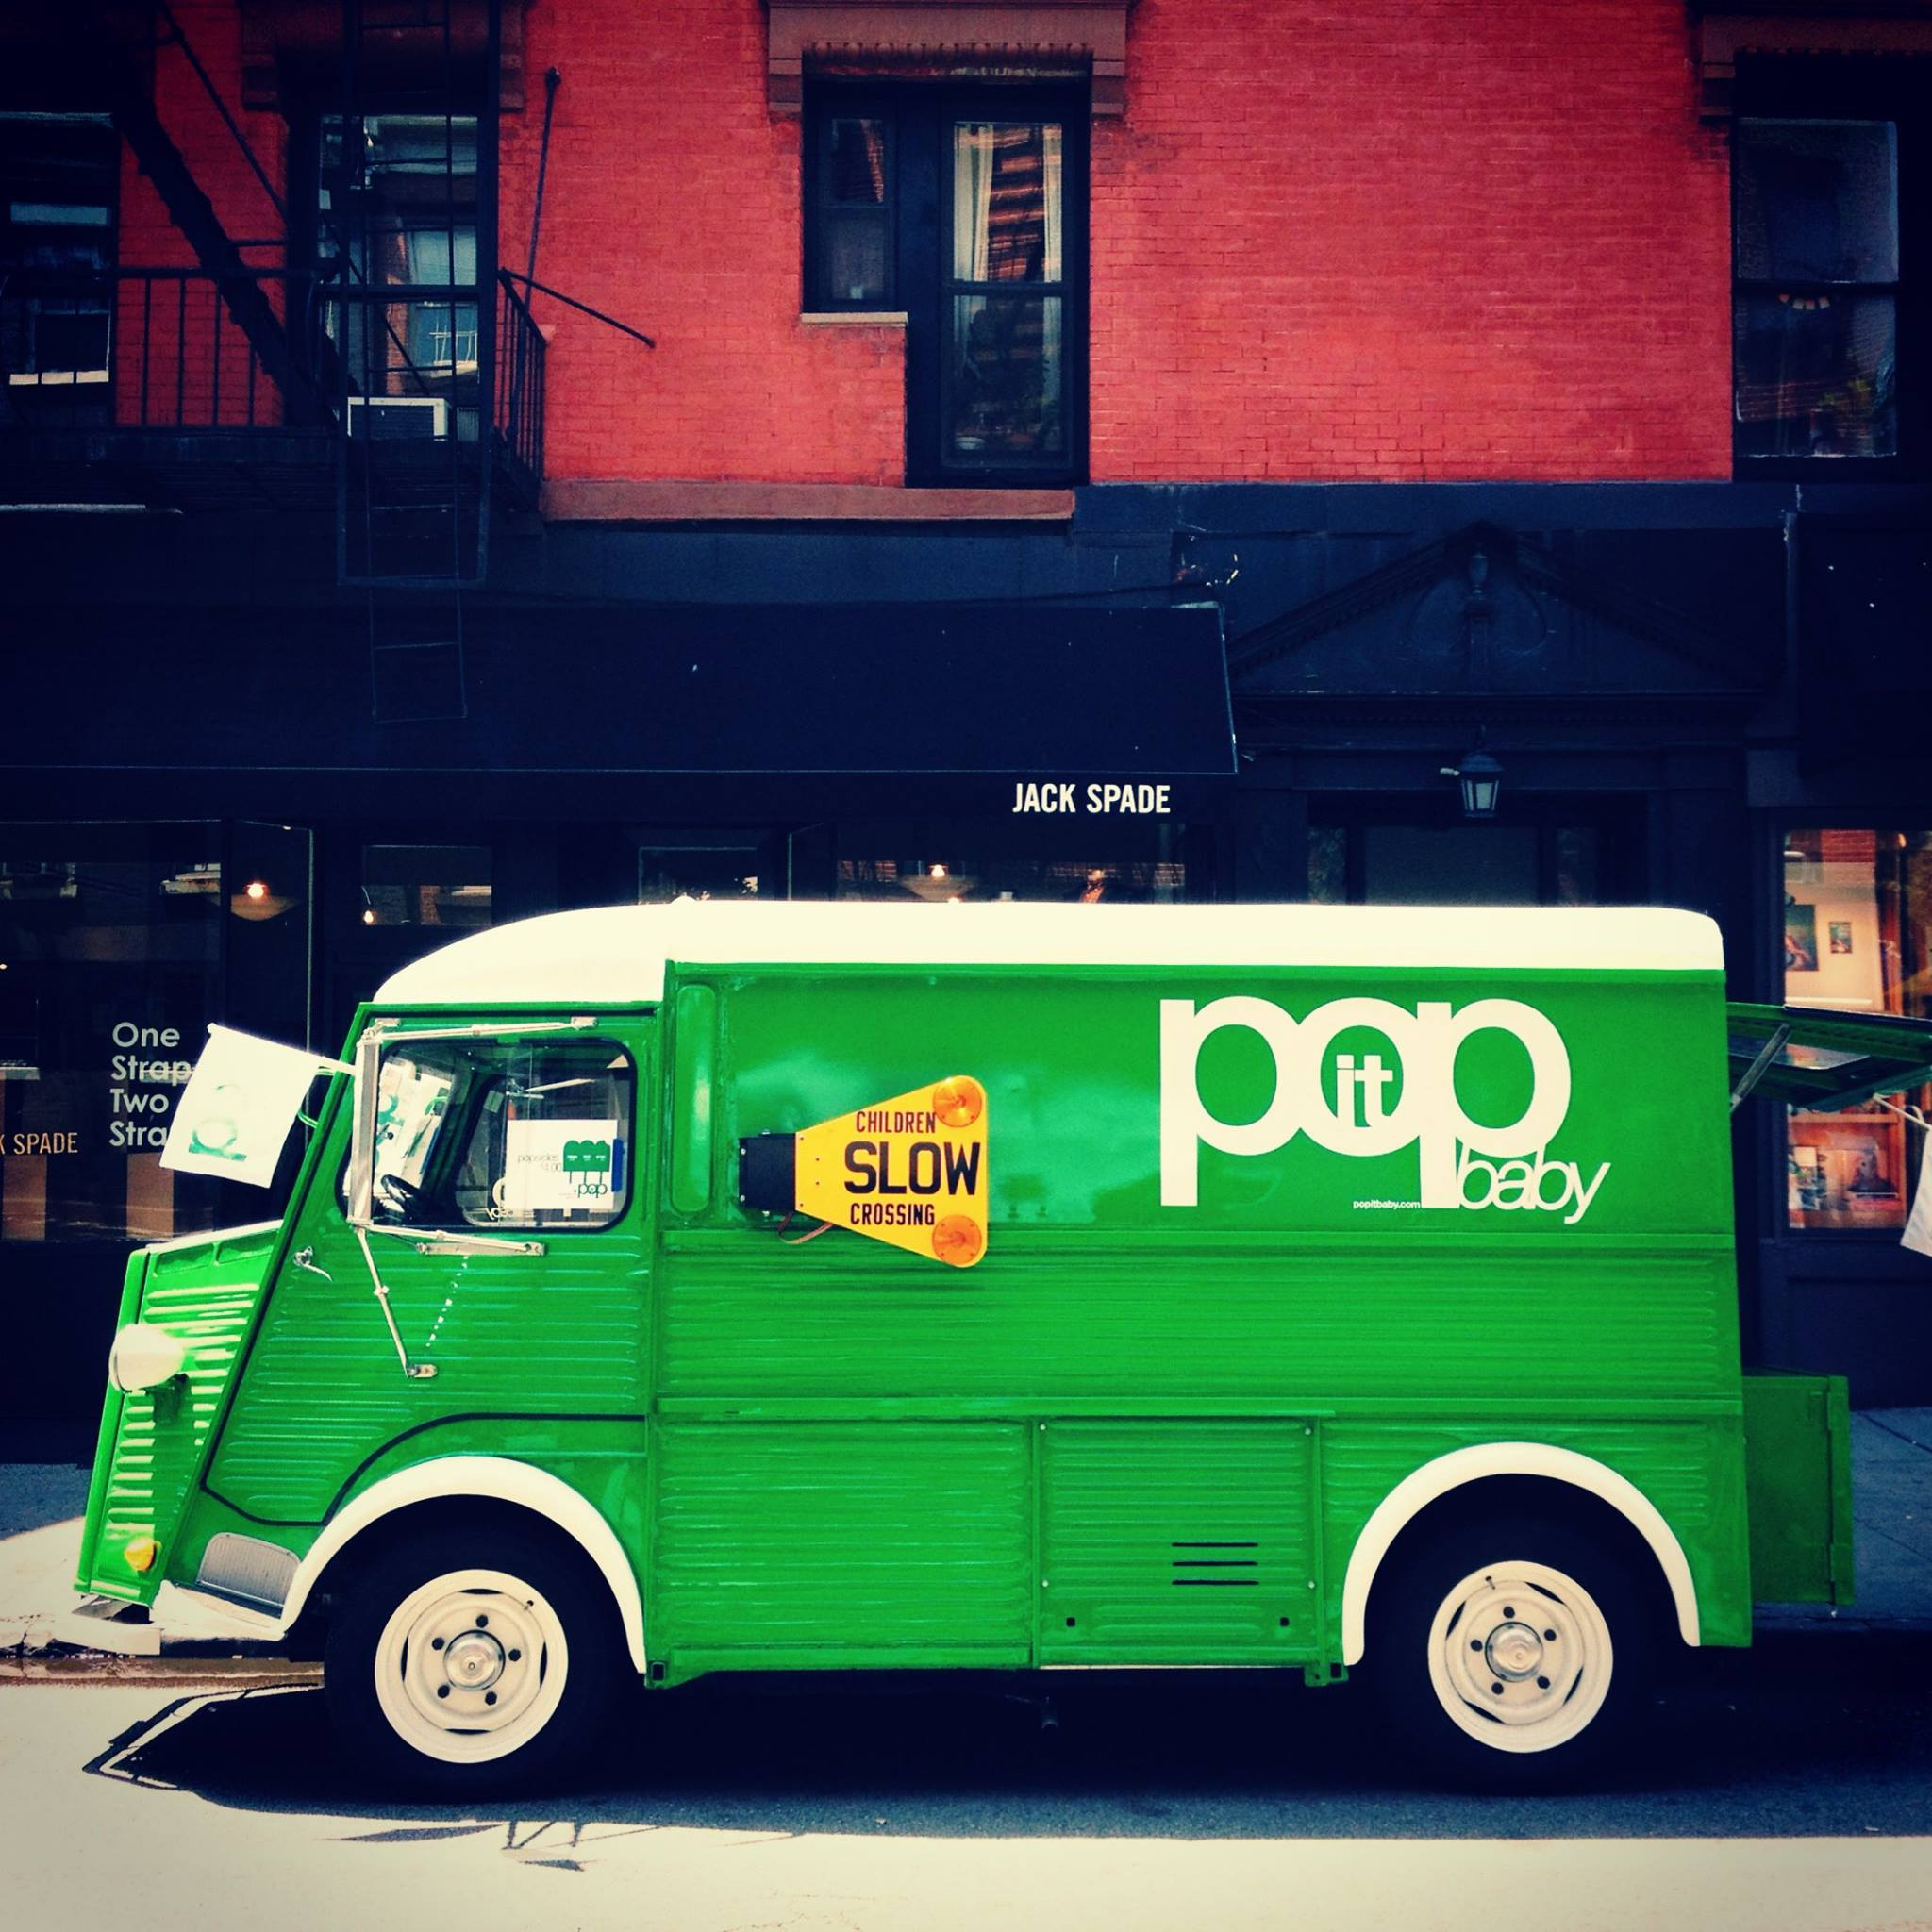 Food trucks are some of the best places to go in New York for foodies looking for something different